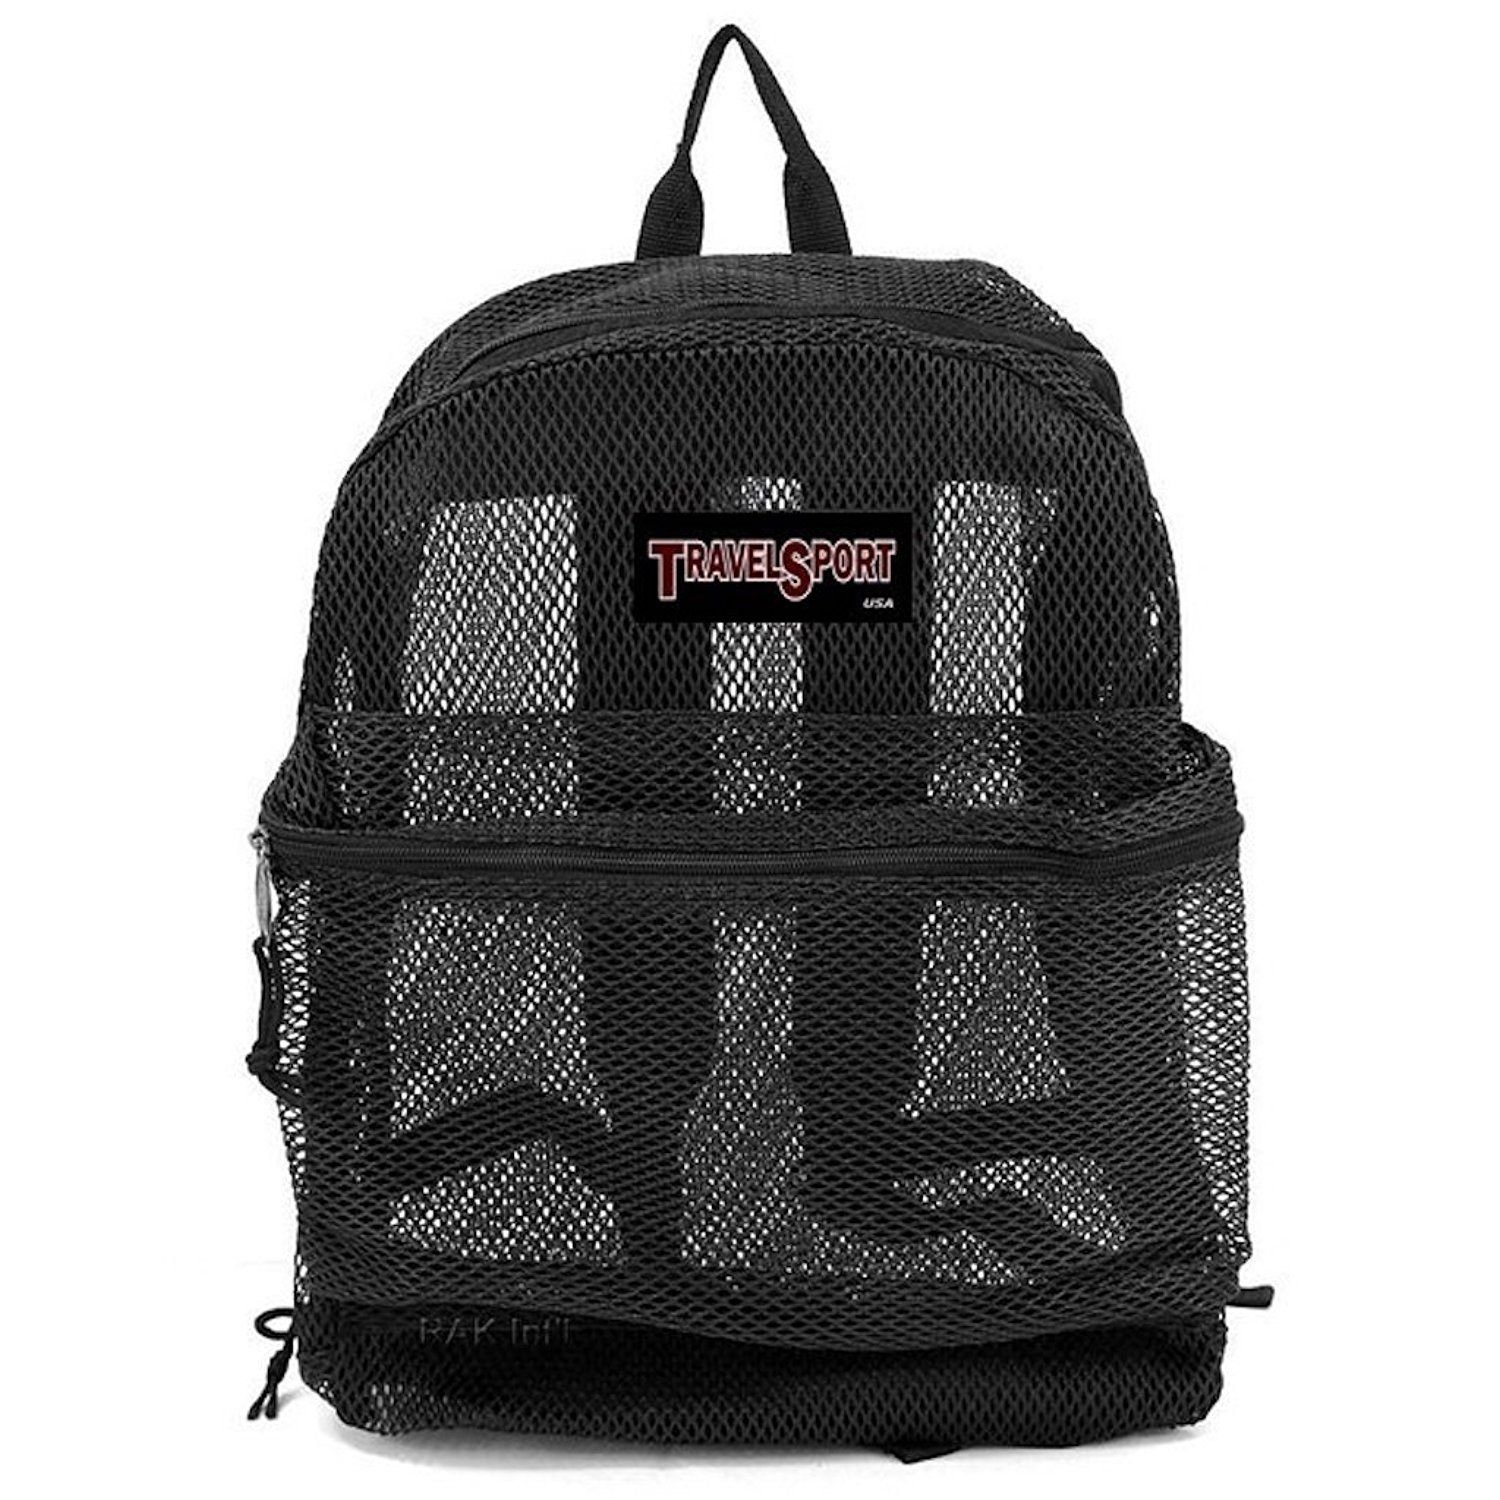 nike mesh school bags cheap   OFF76% The Largest Catalog Discounts 437079a413f7f